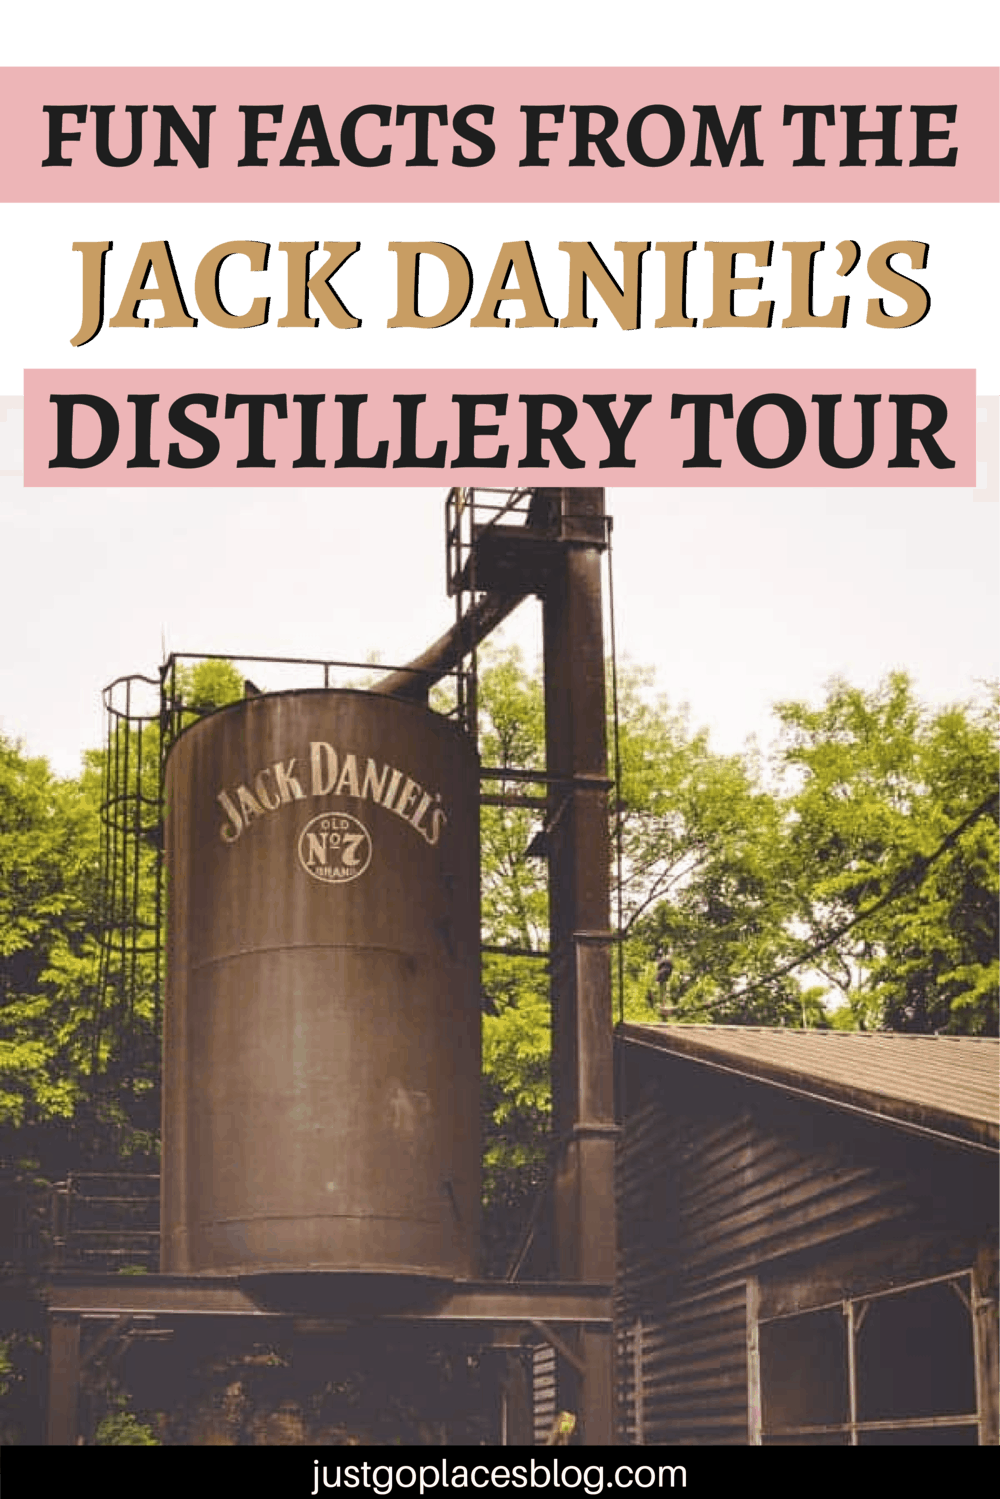 Fun Facts From The Jack Daniels Distillery Tour